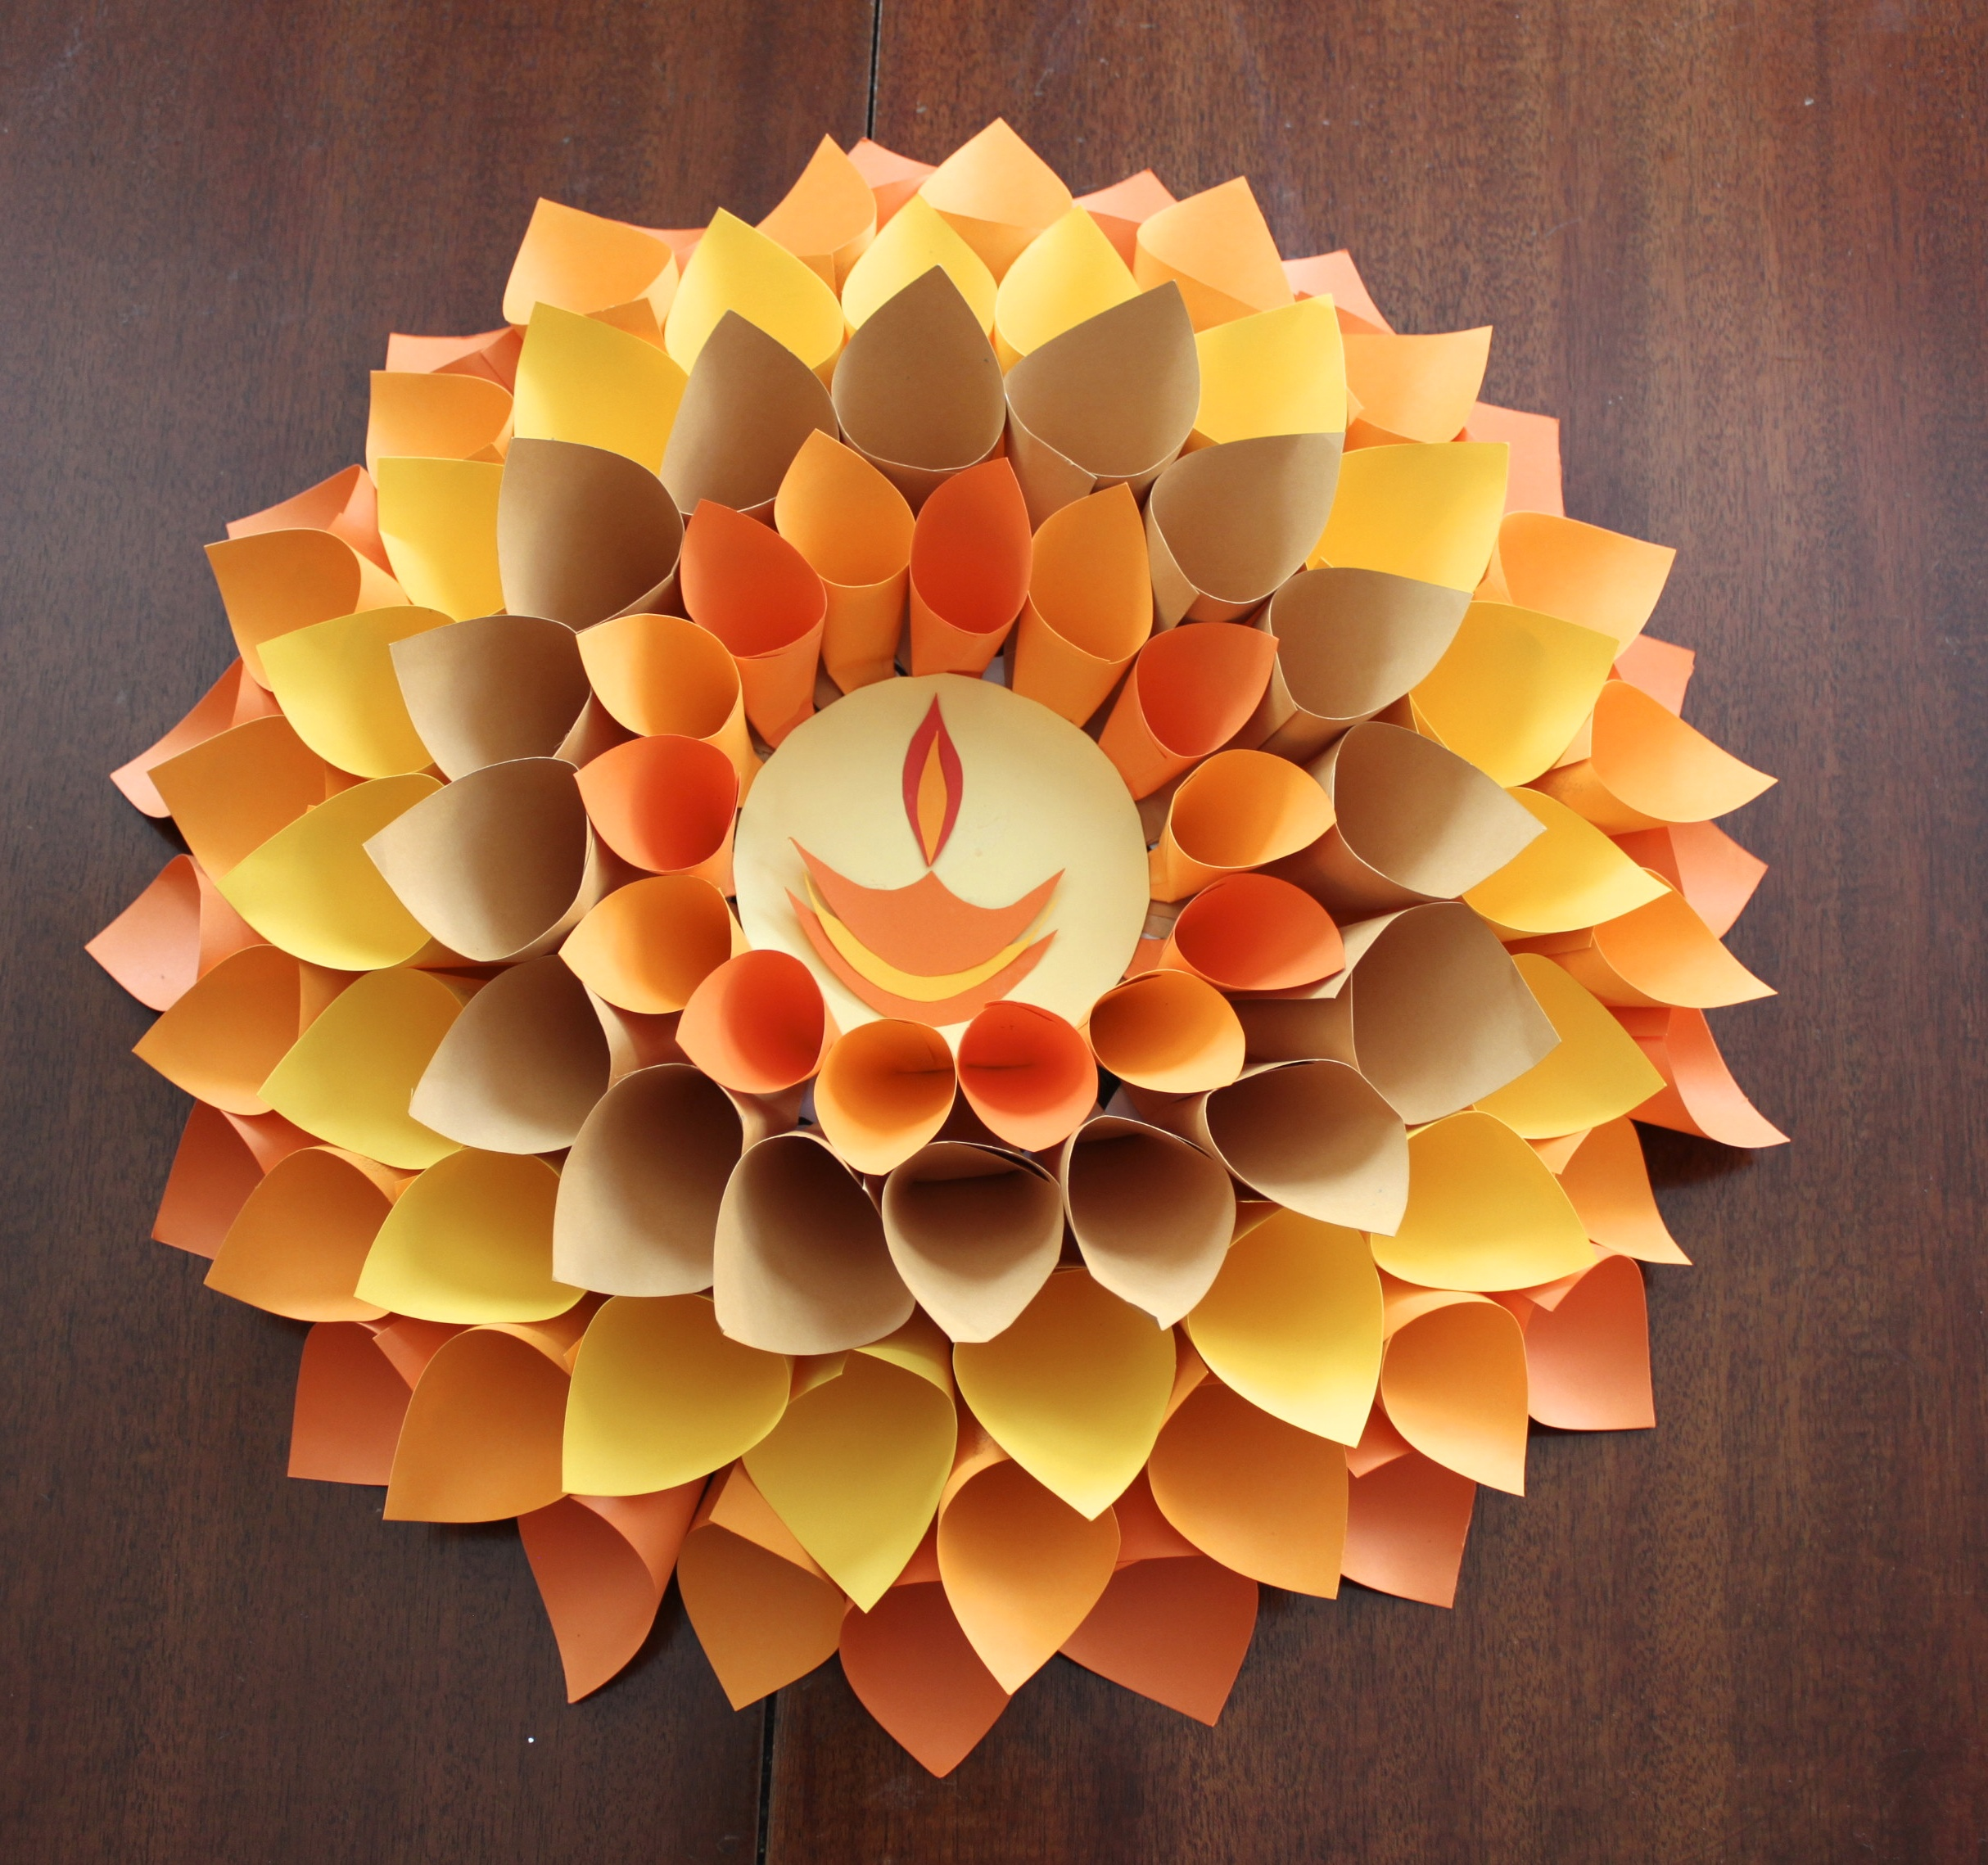 Diwali Decoration Ideas And Crafts Dramatic Dahlia Diwali S4 Creative Me